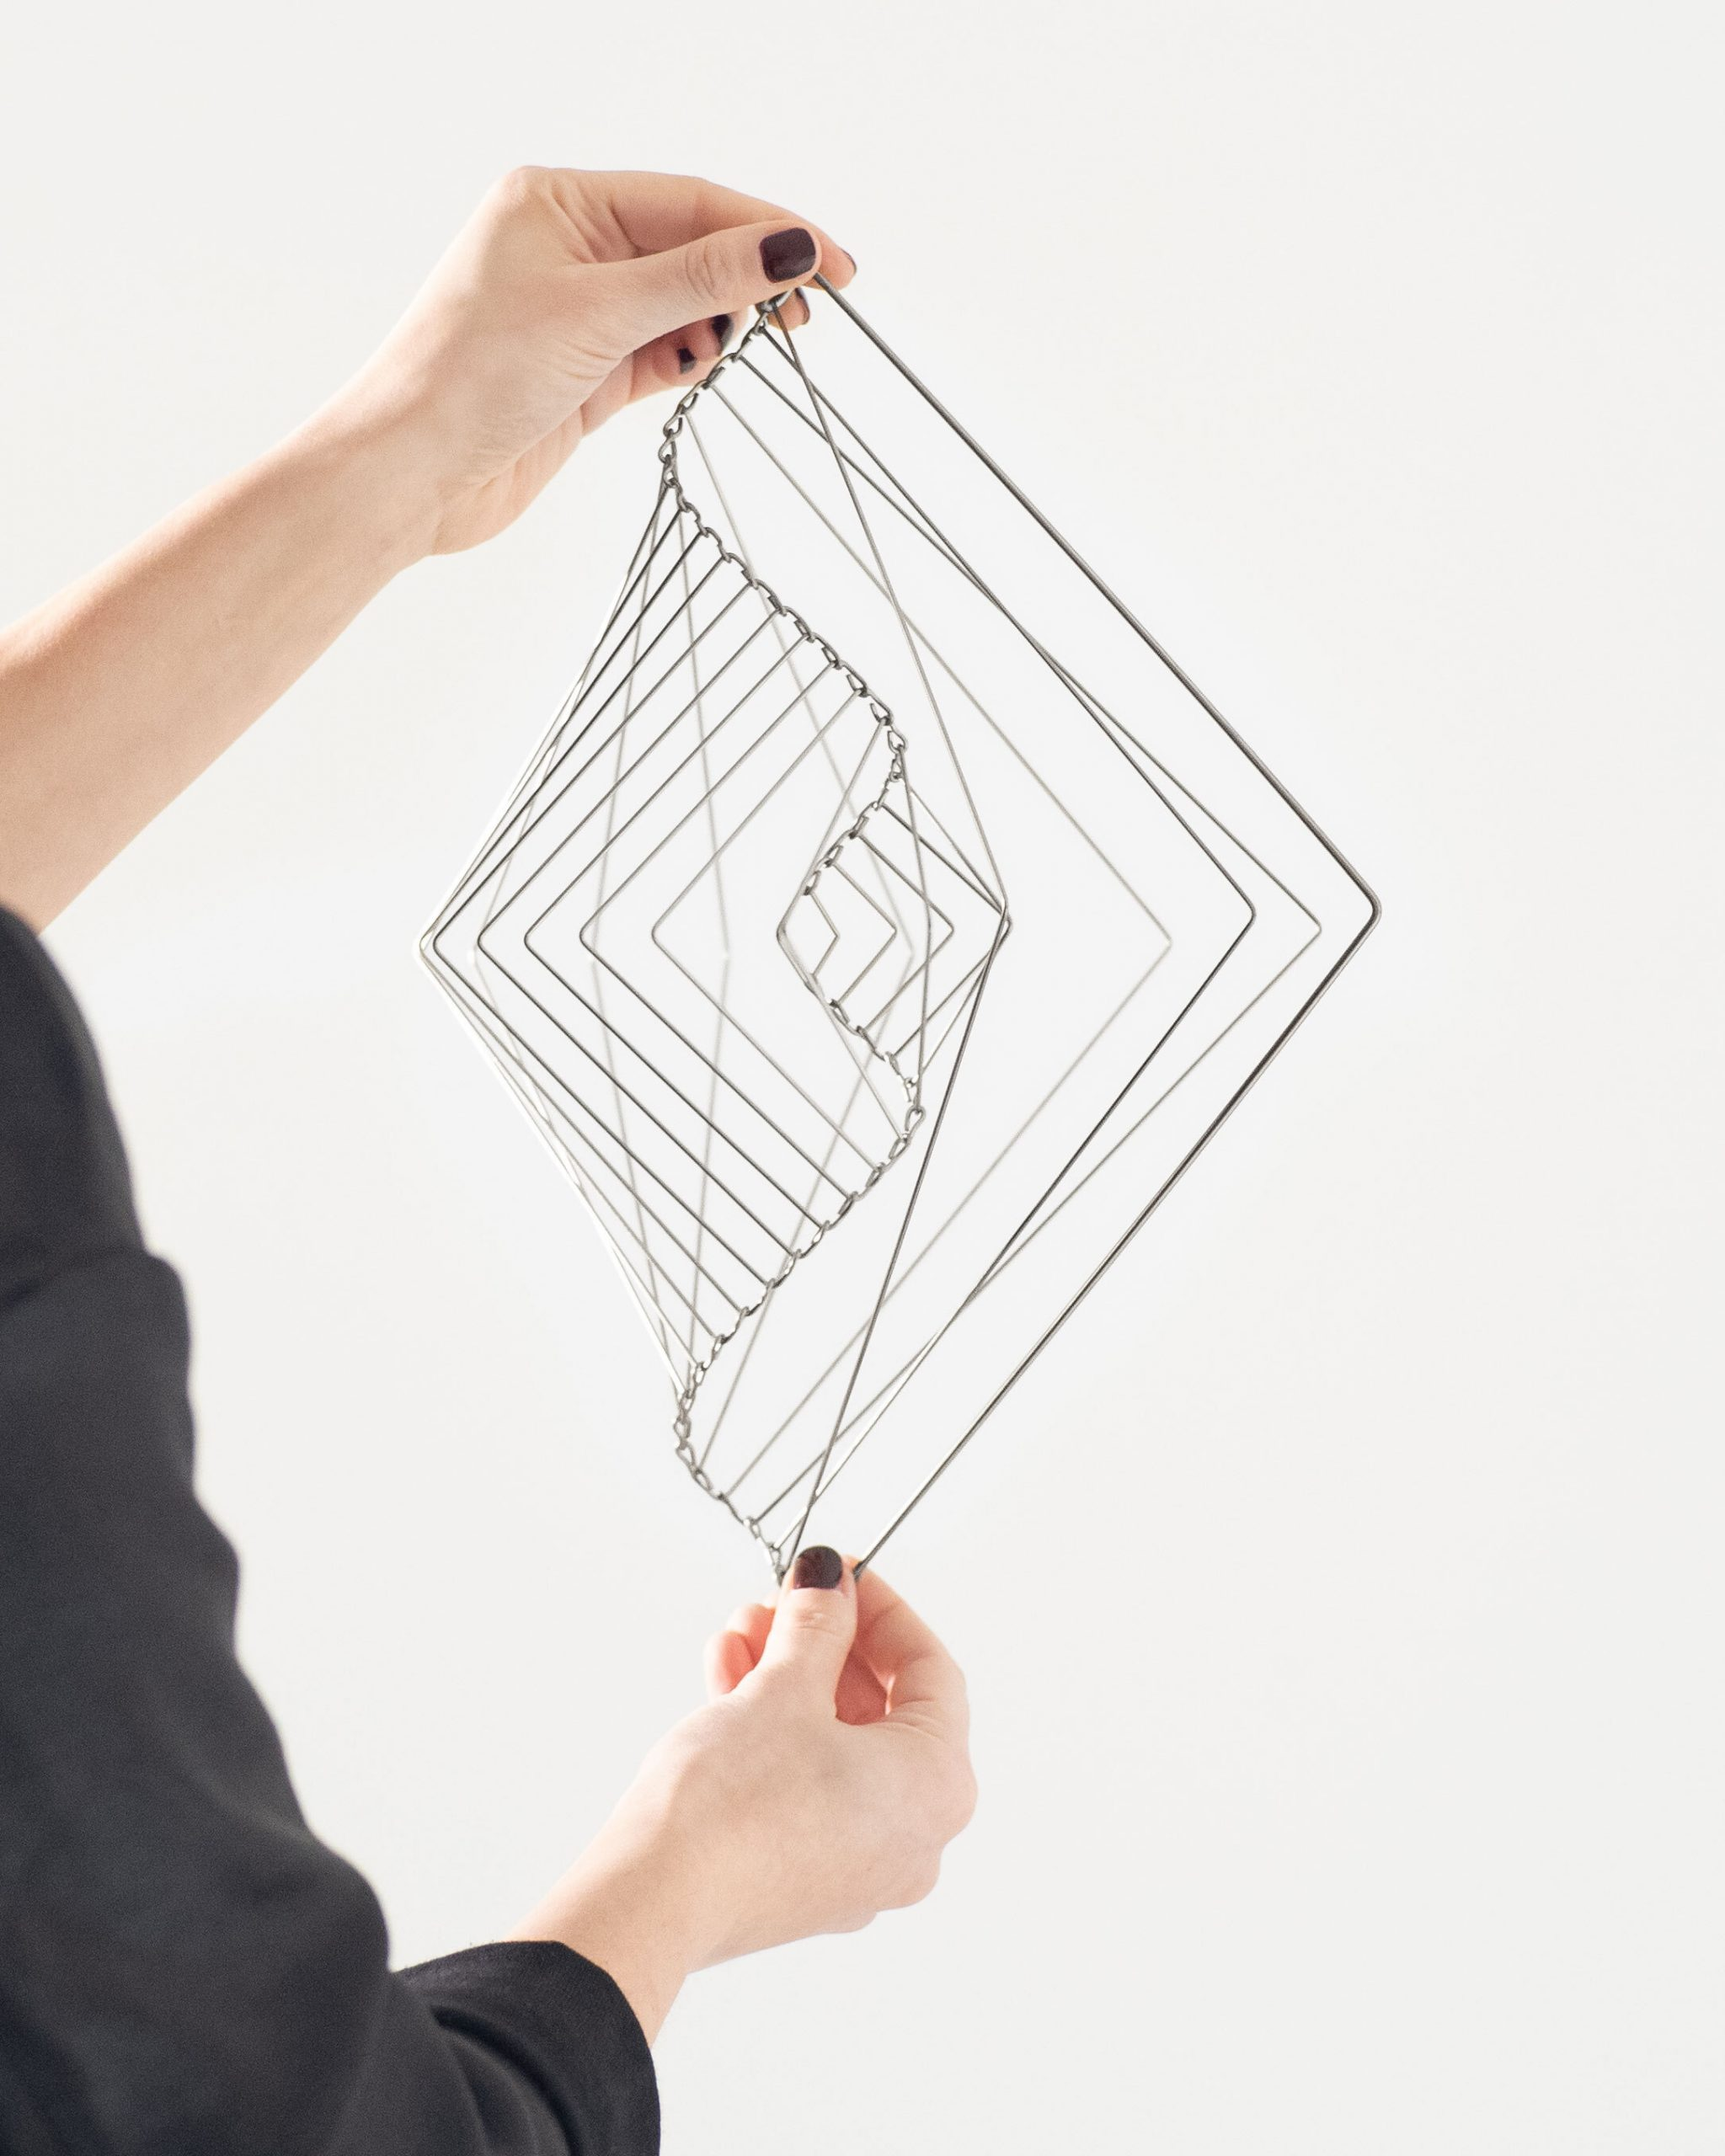 Square Wave was originally created as an artistic sculpture long before it was considered to be a relaxing